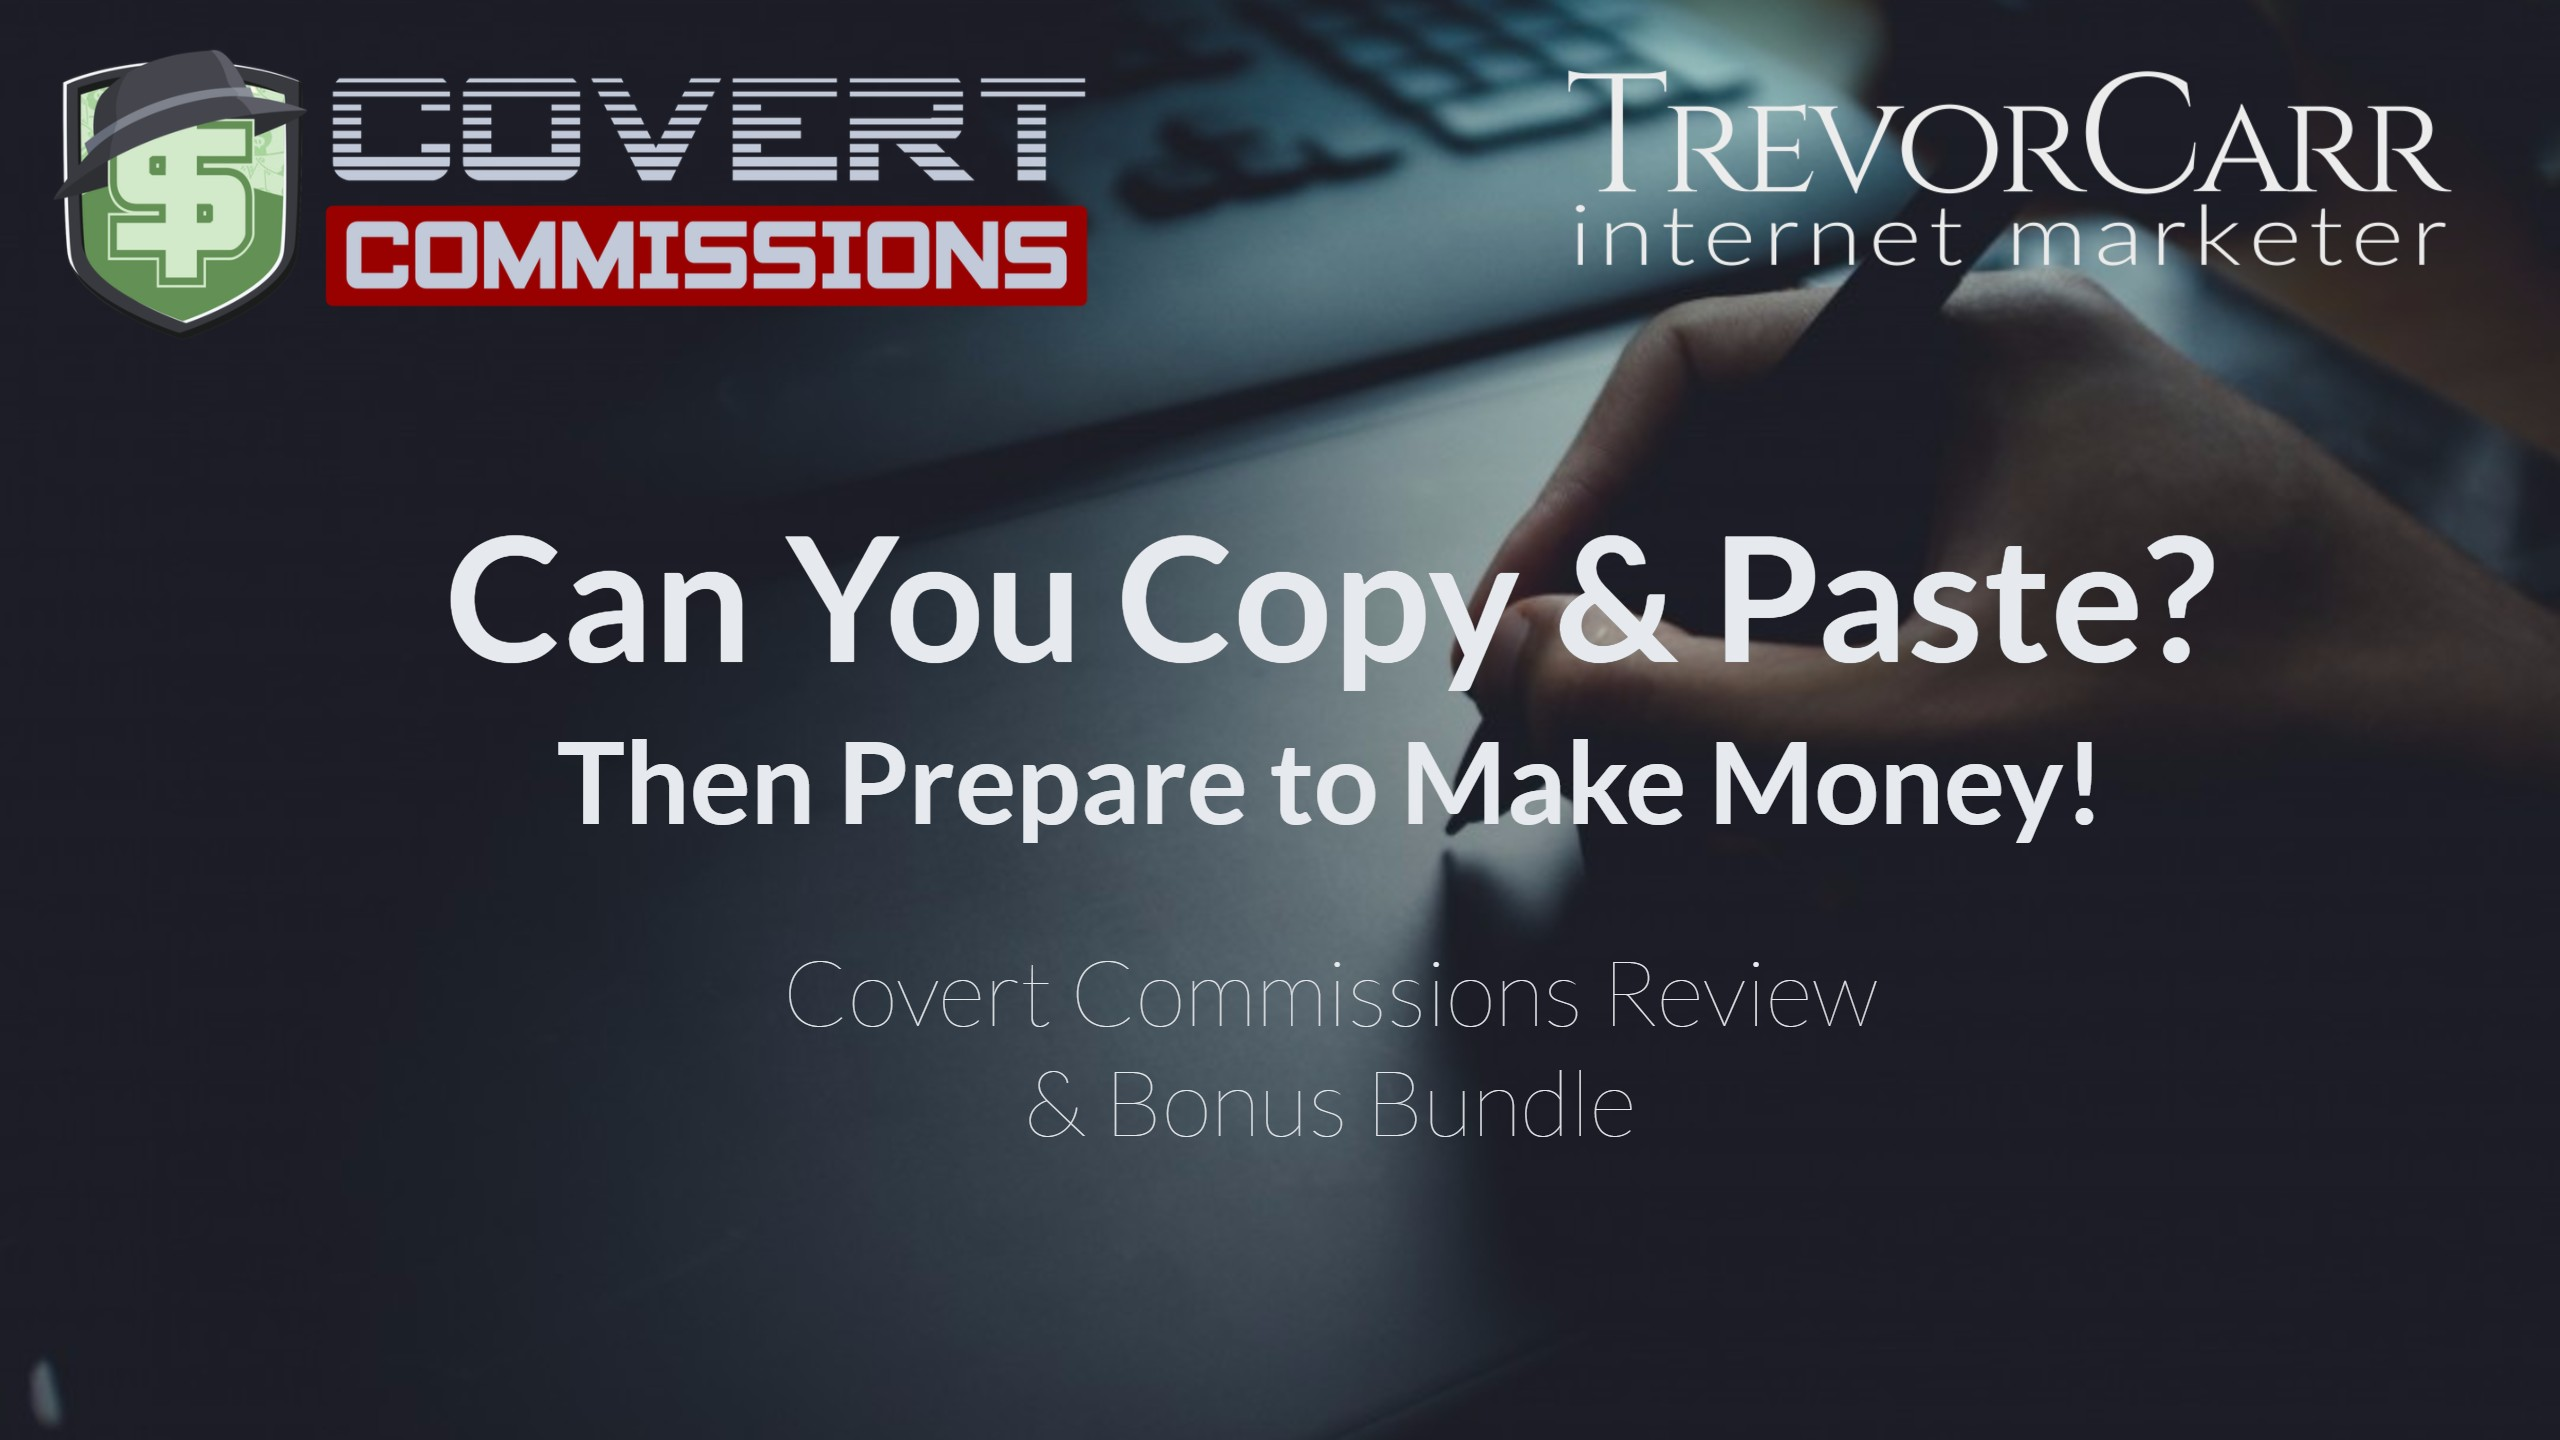 Covert Commissions Review & Mega Bonus Bundle